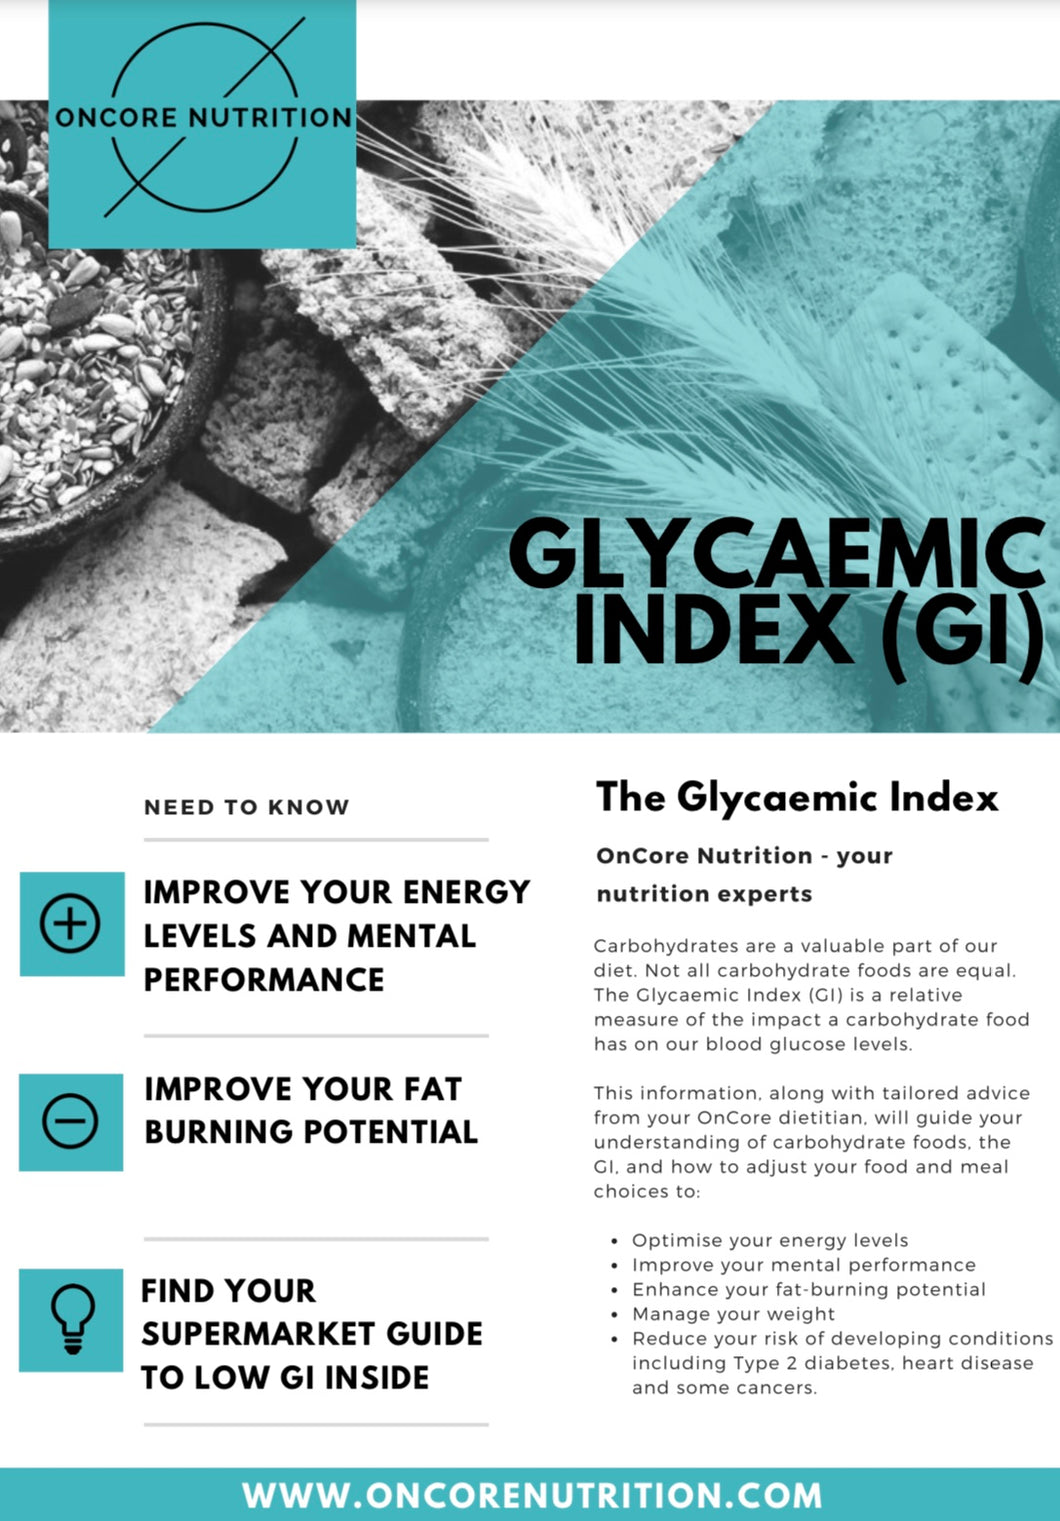 Glycaemic Index Guide